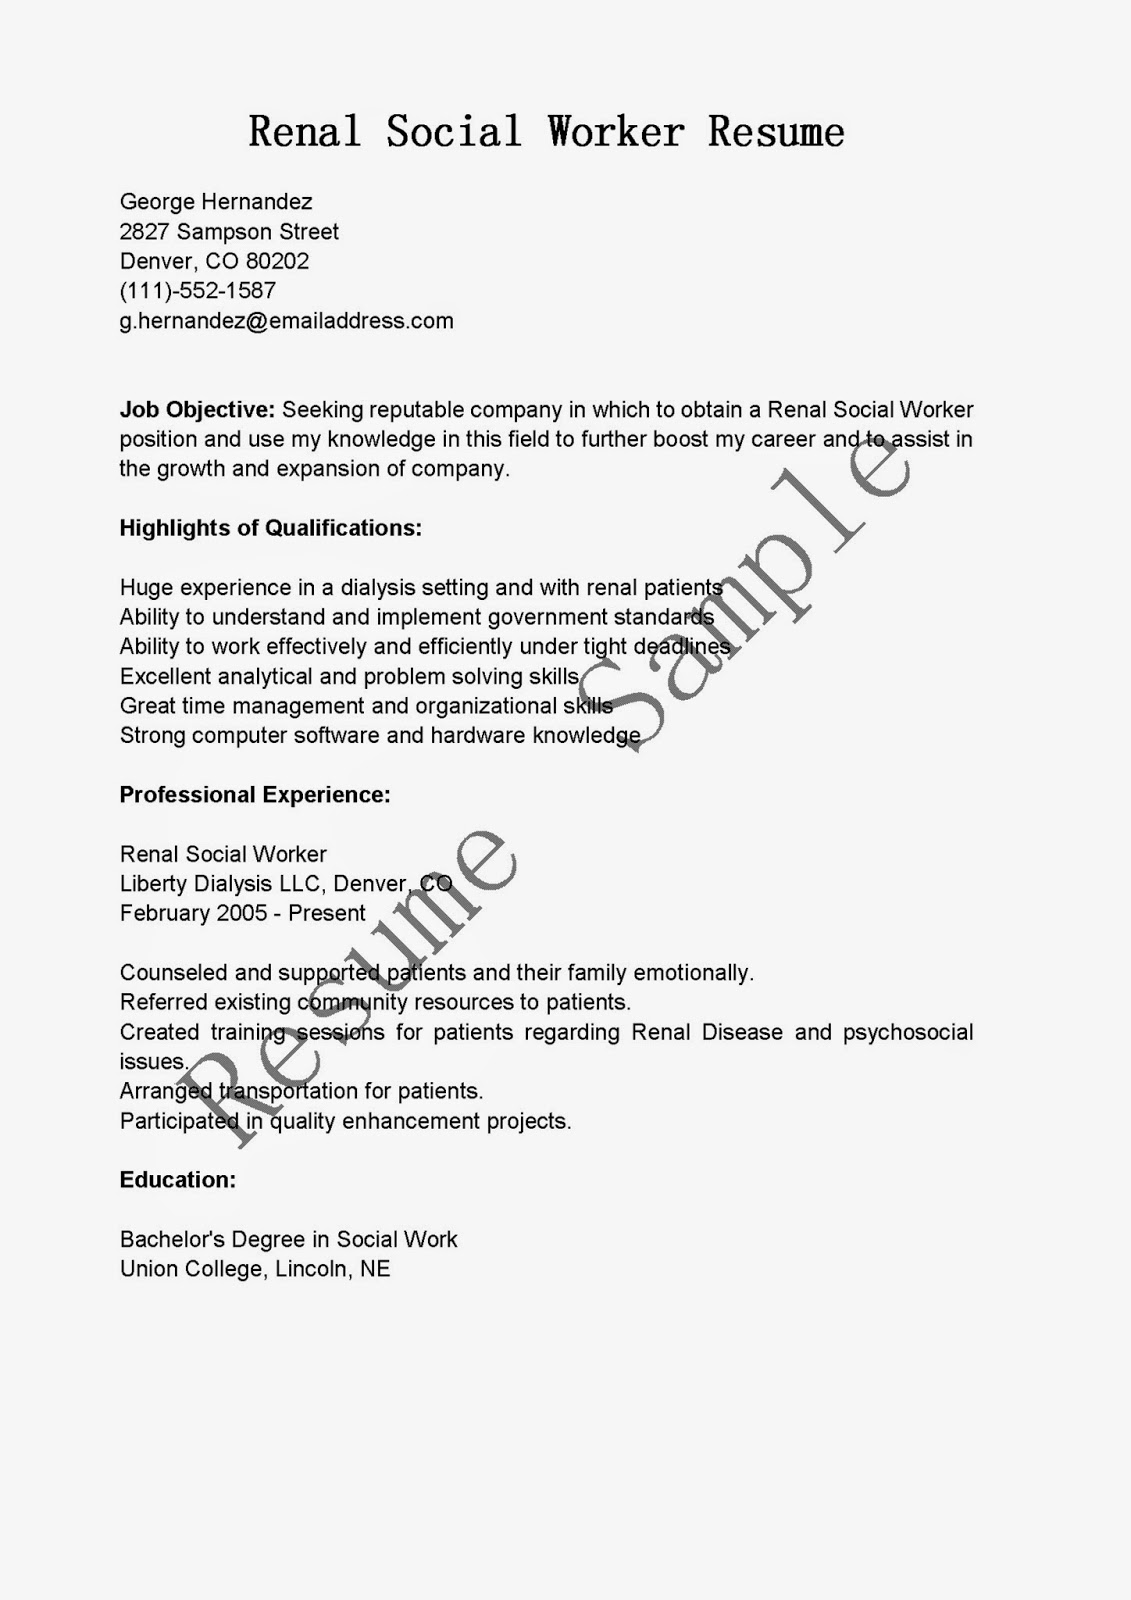 resume samples  renal social worker resume sample